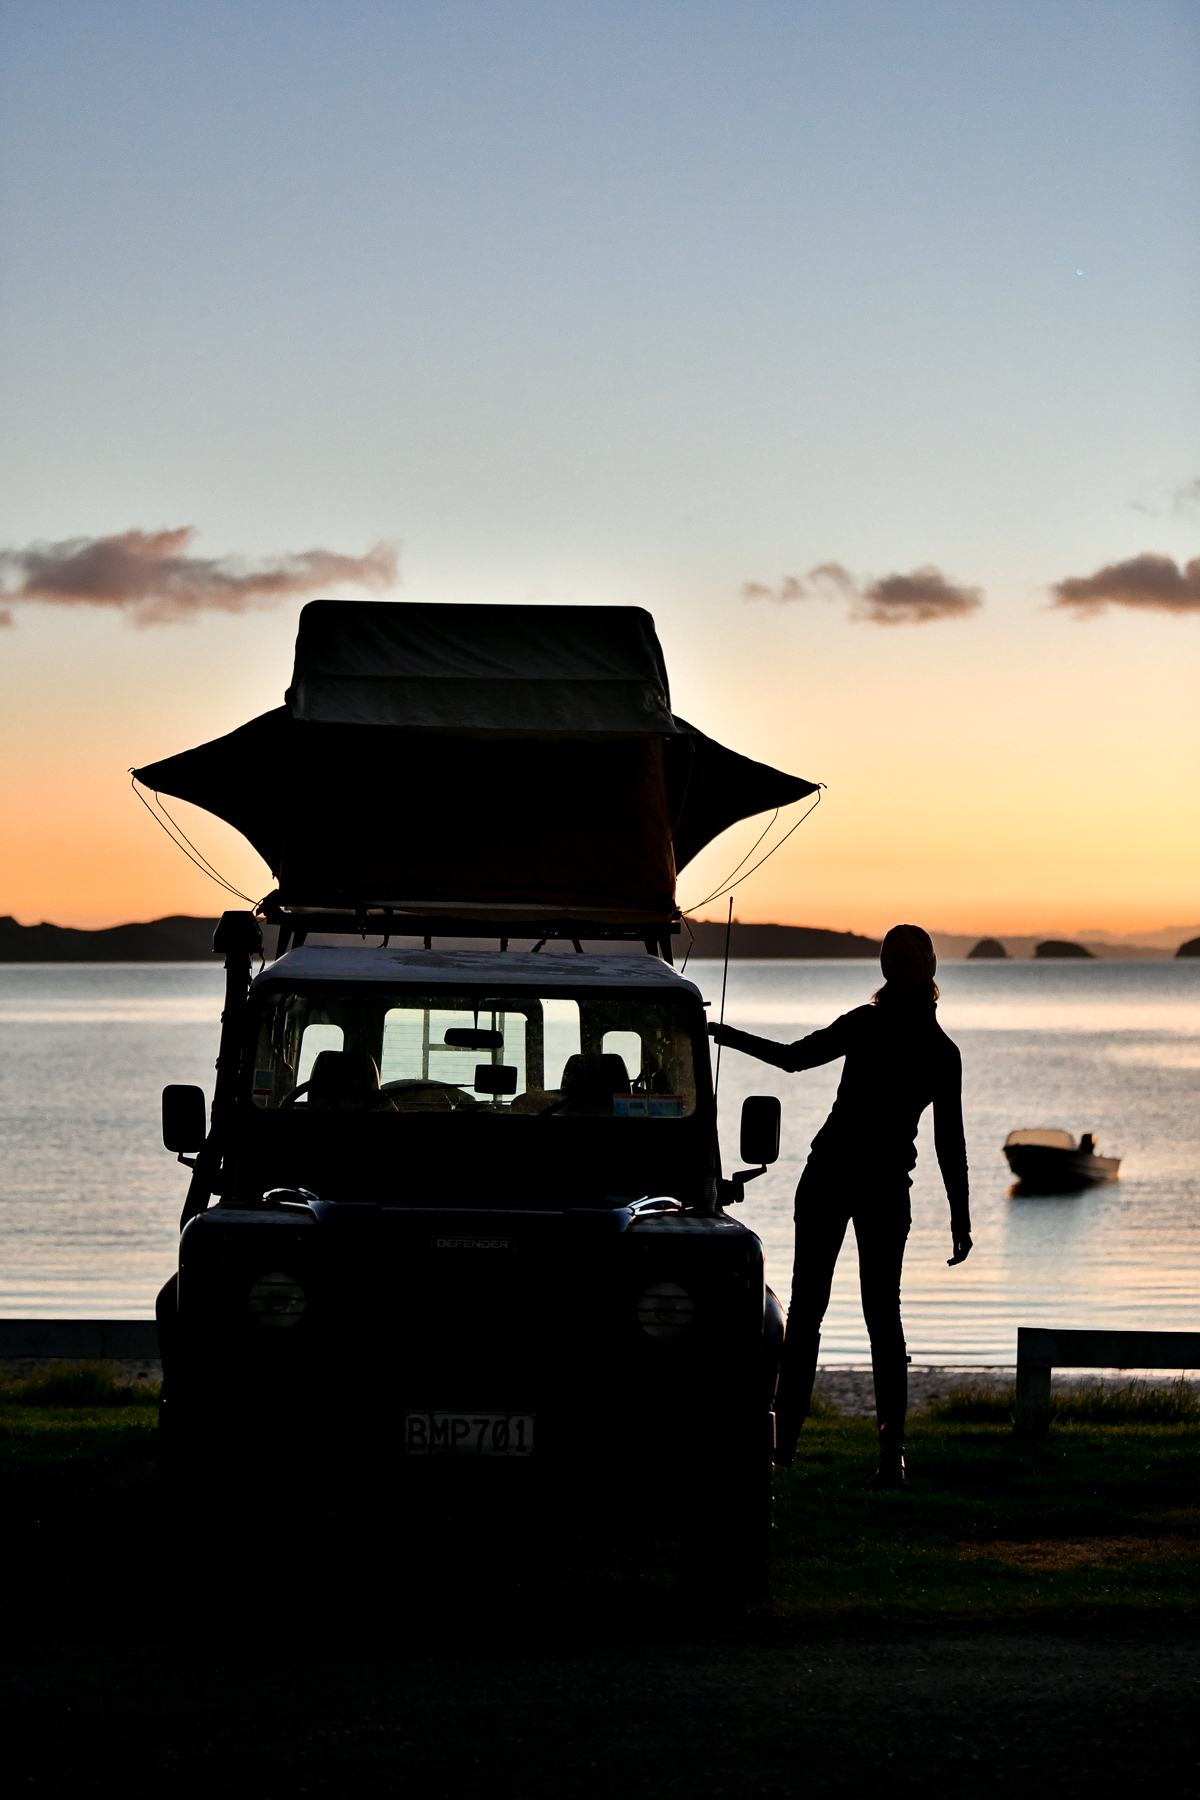 Stacie Flinner Land Rover Camping New Zealand-14.jpg